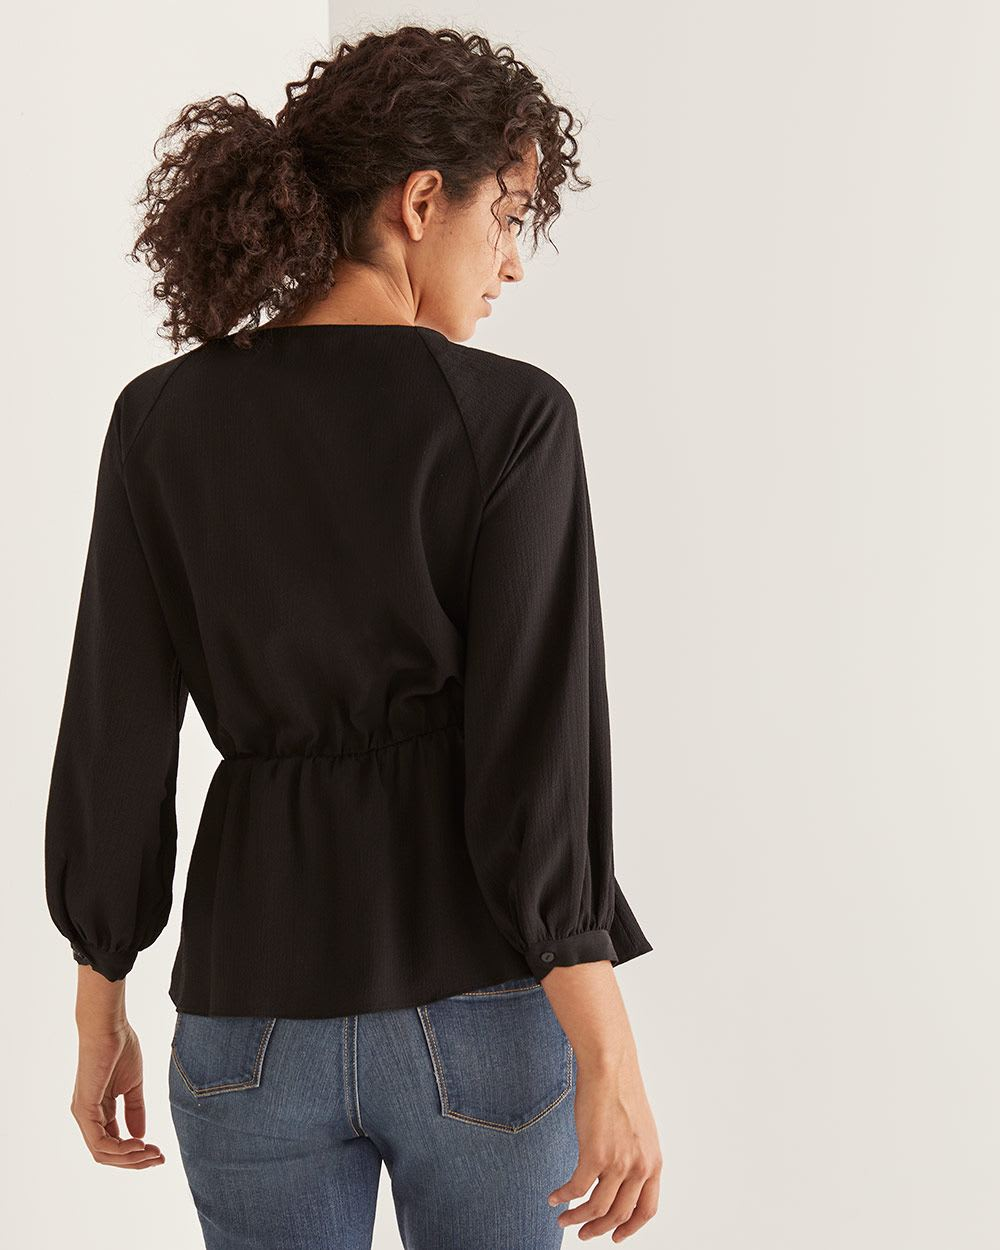 Cinched Waist Blouse